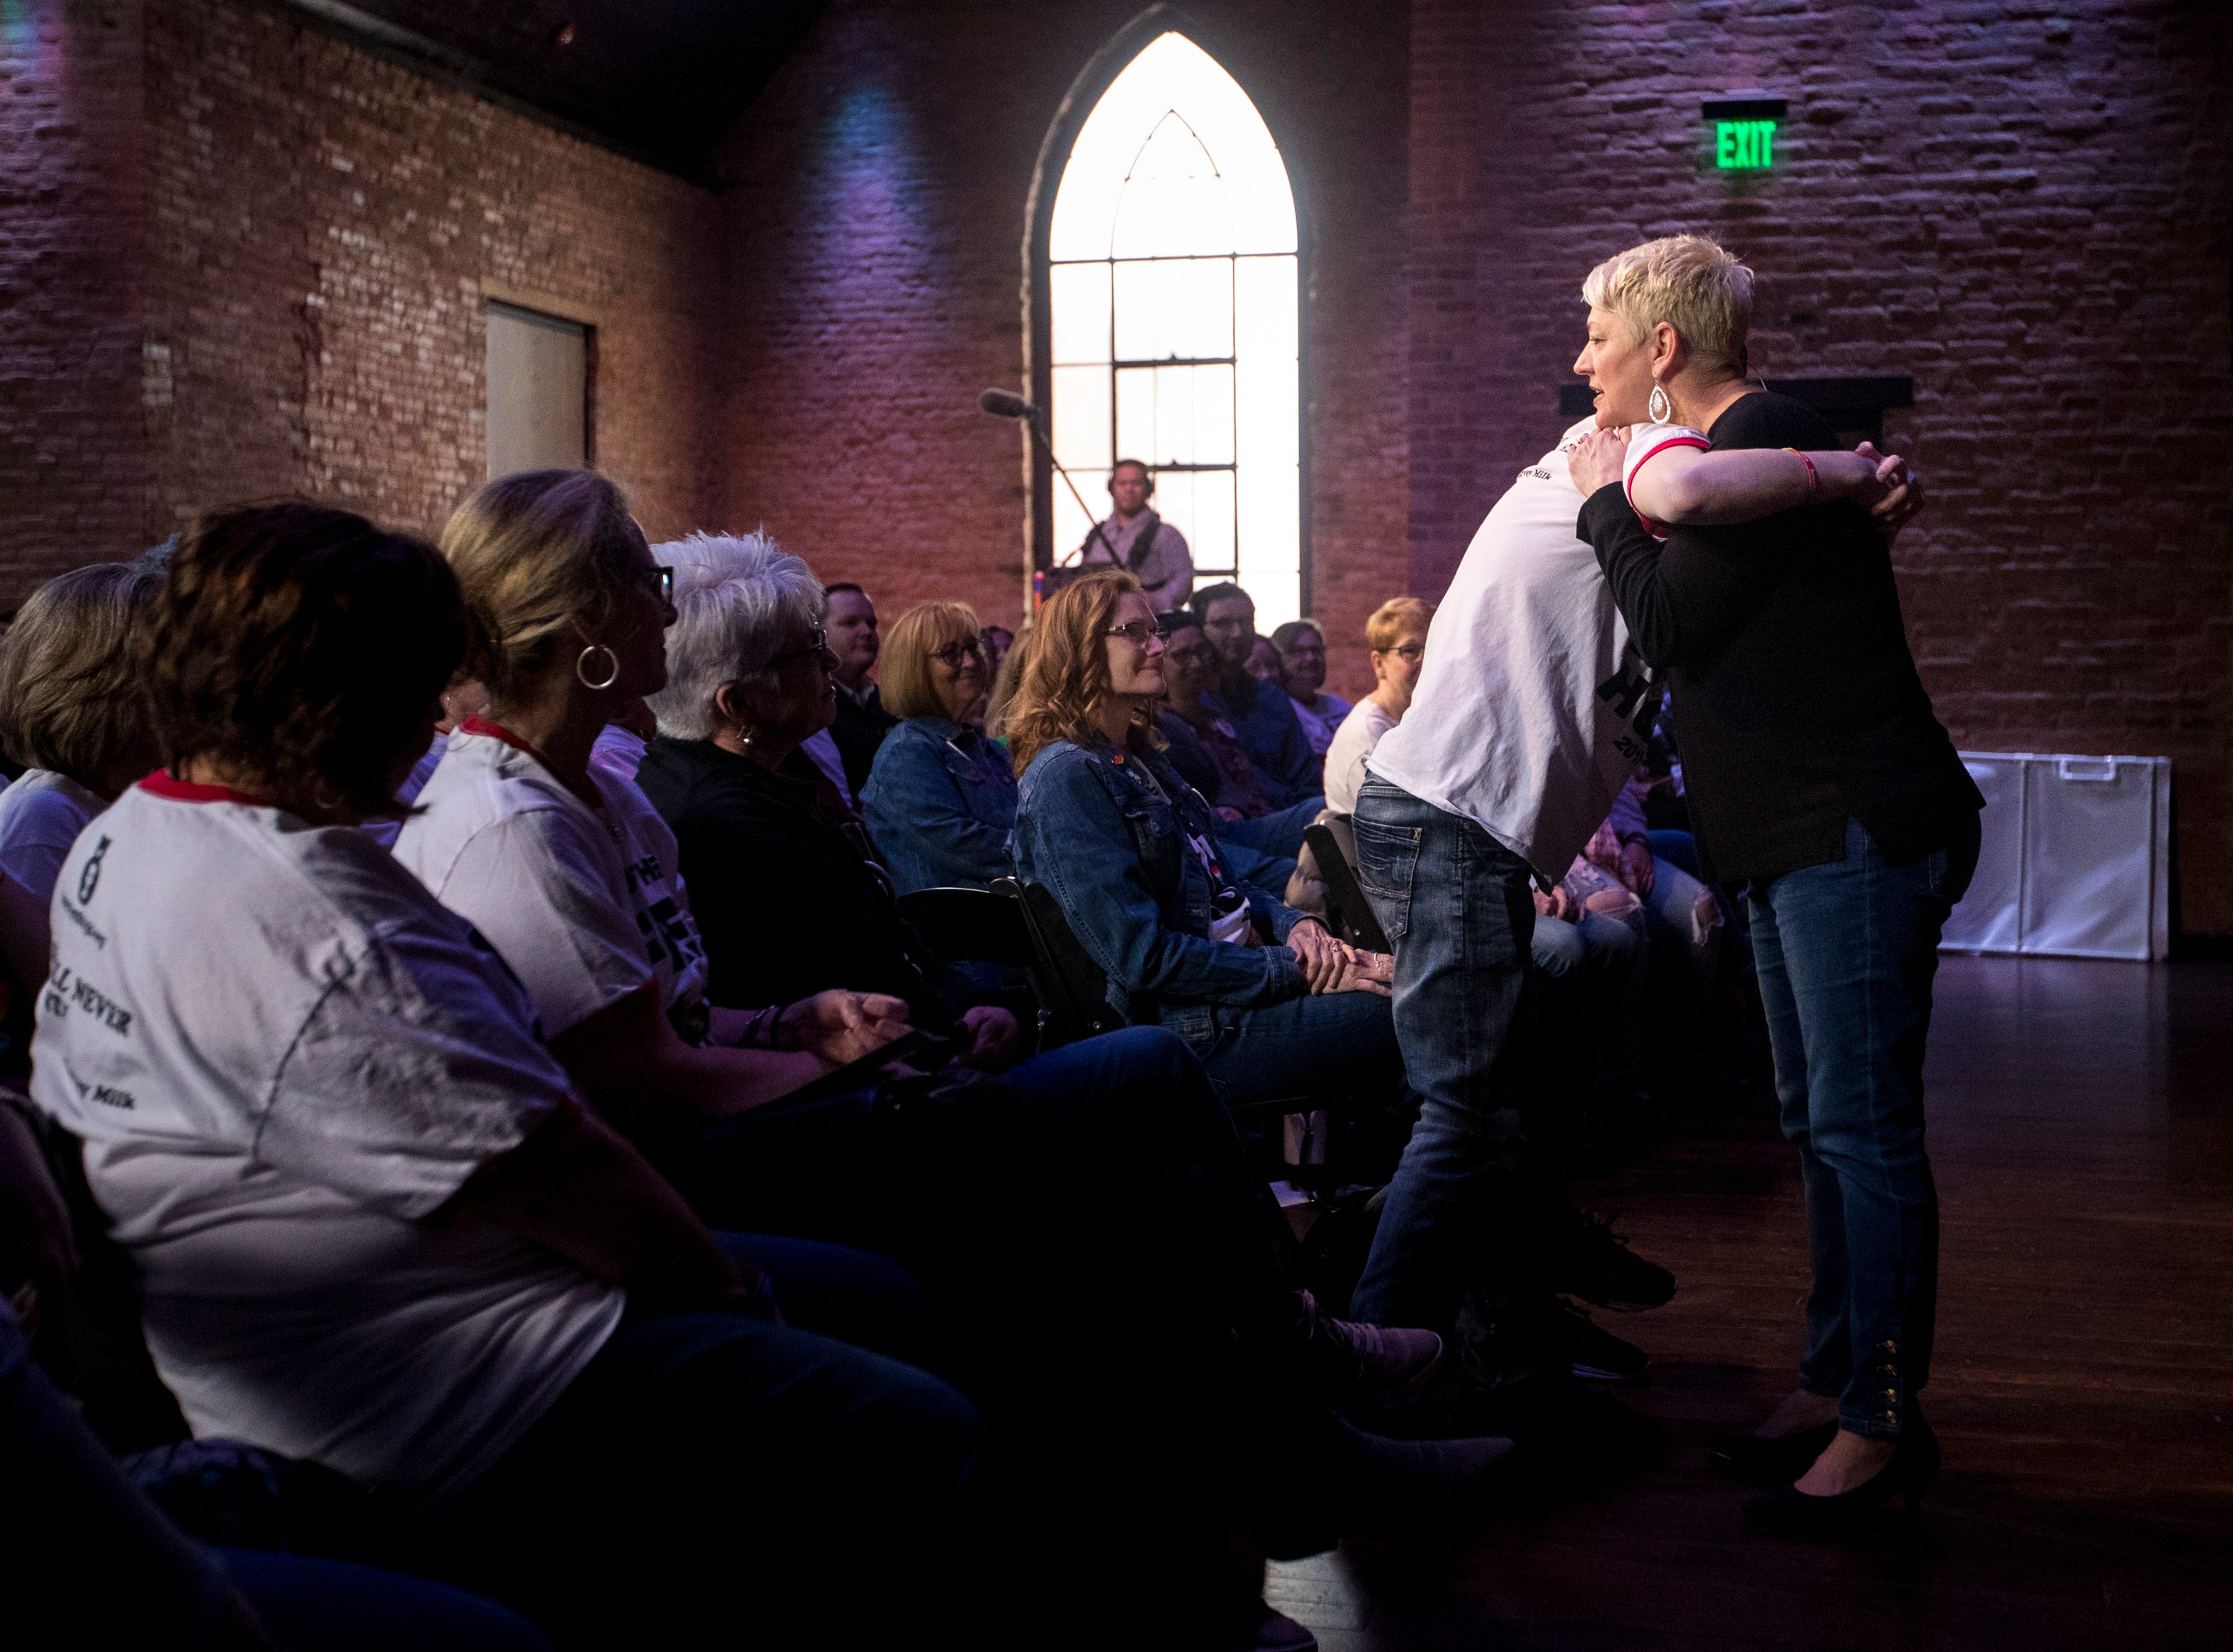 Sara Cunningham hugs an audience member at GracePointe Church in Nashville on Sunday, March 31, 2019. Cunningham spoke about her journey to accepting her son as a gay man while keeping her faith.